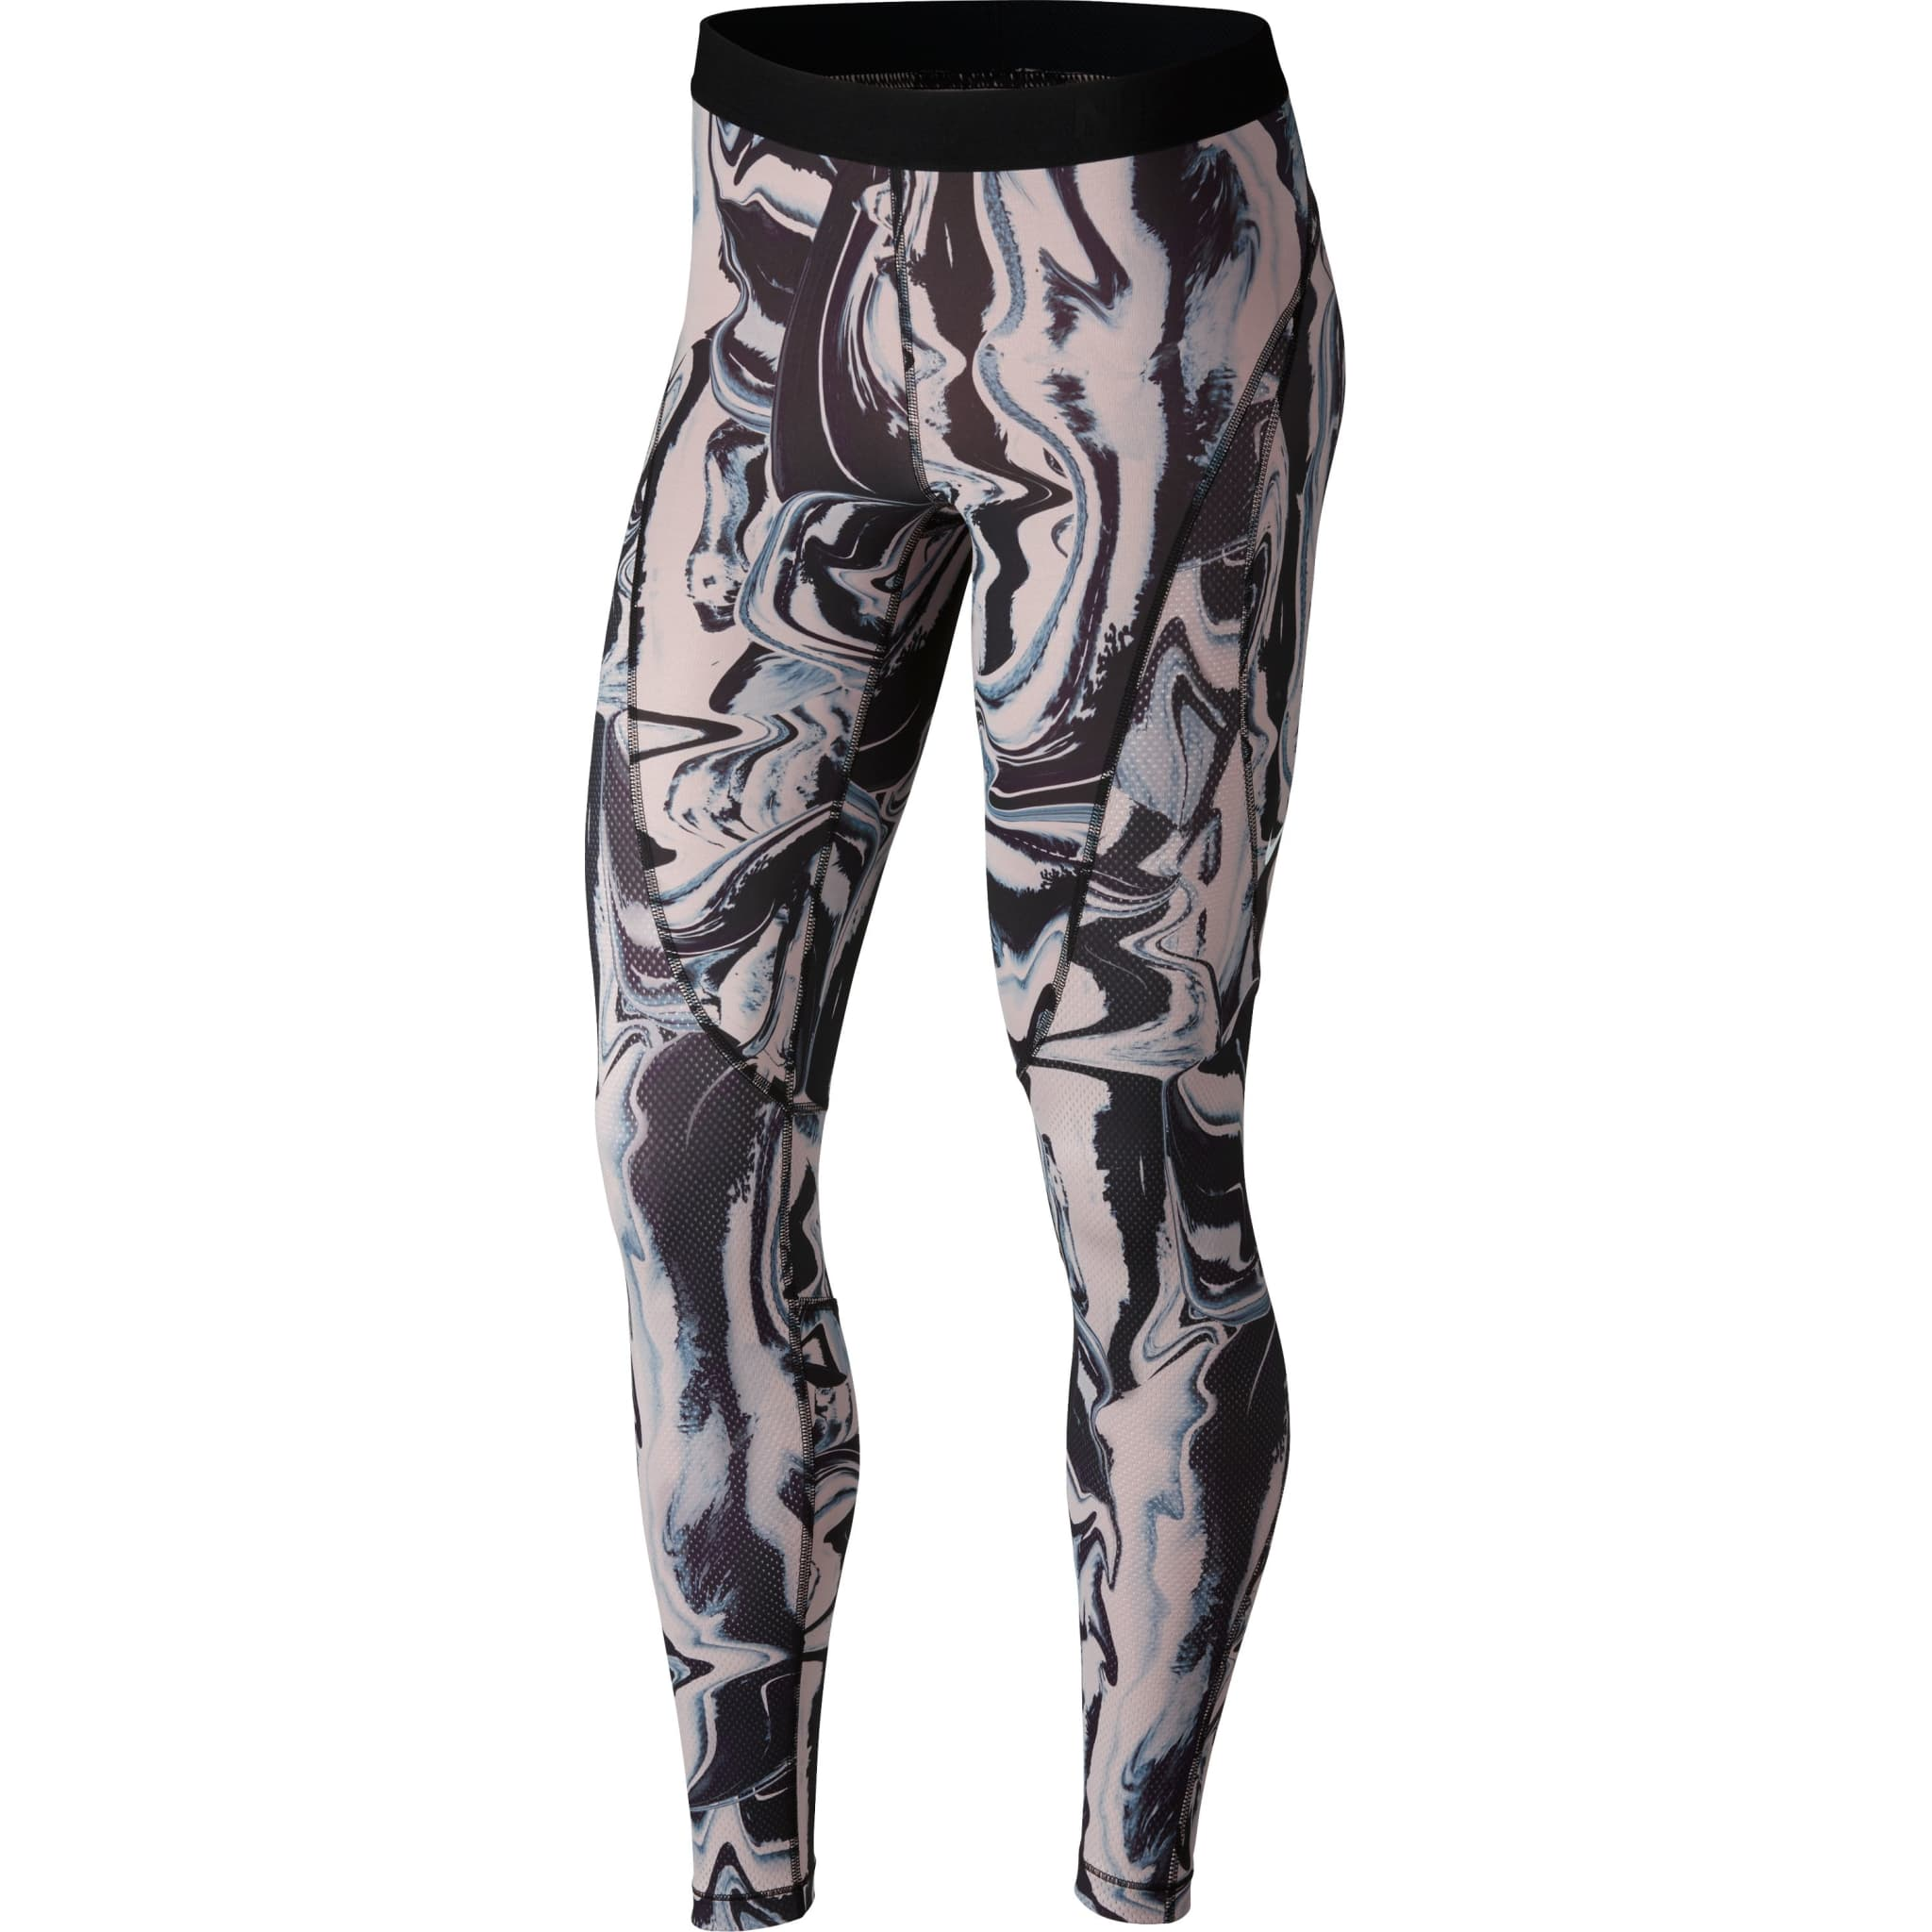 Pro HyperCool Tight Printed Marbel